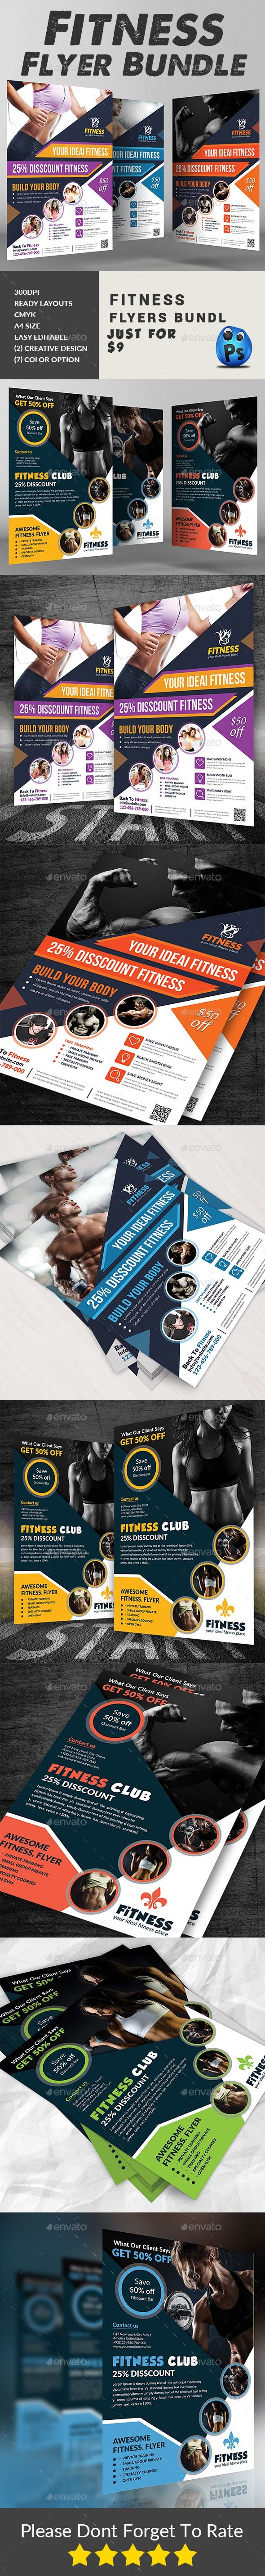 Fitness Flyers Bundle #AD #Fitness, #Sponsored, #Flyers, #Bundle